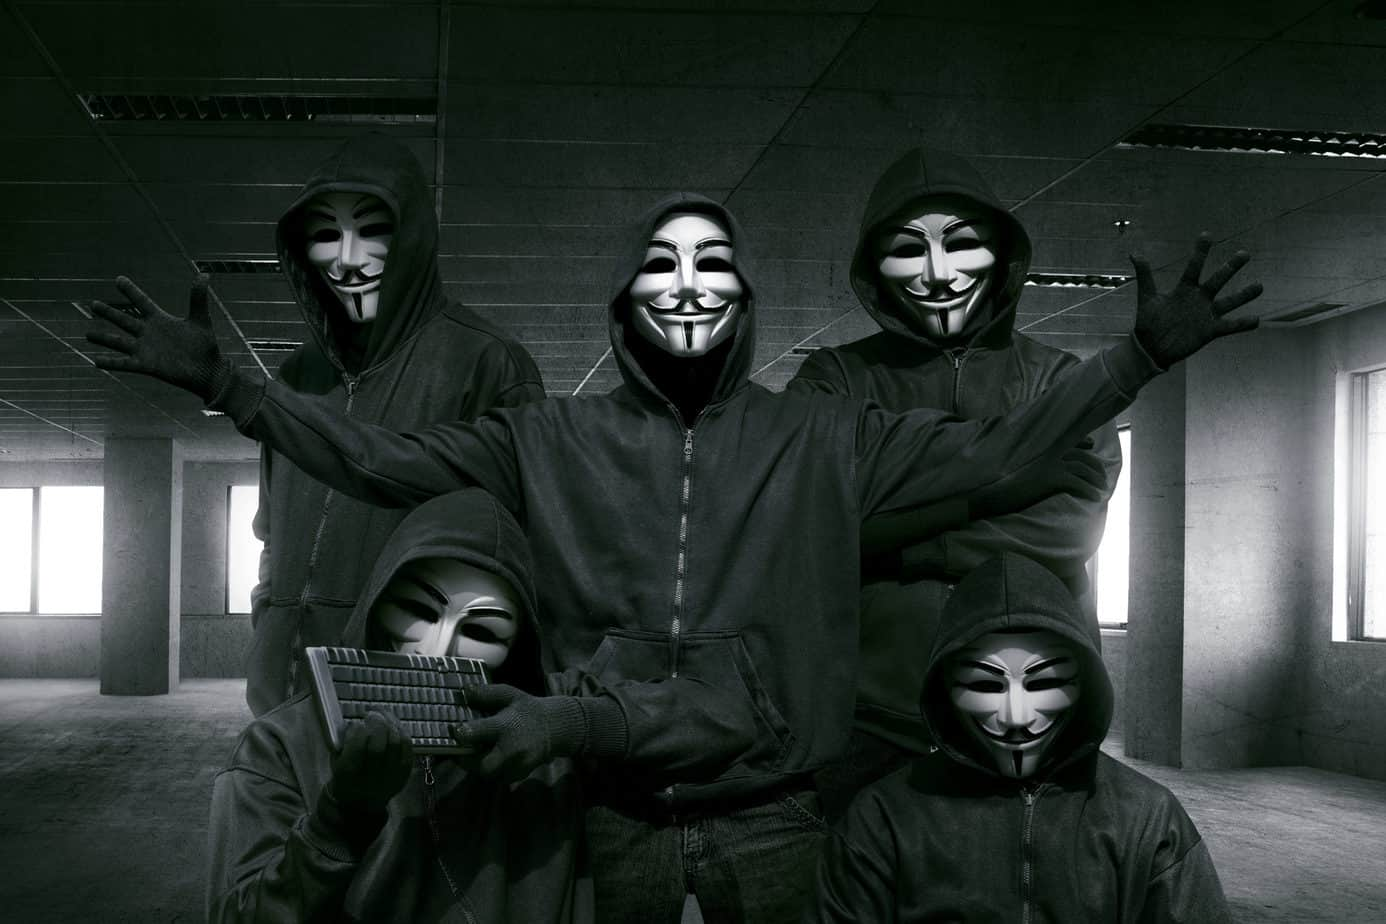 Group of hooded hacker with mask standing in the dark room background